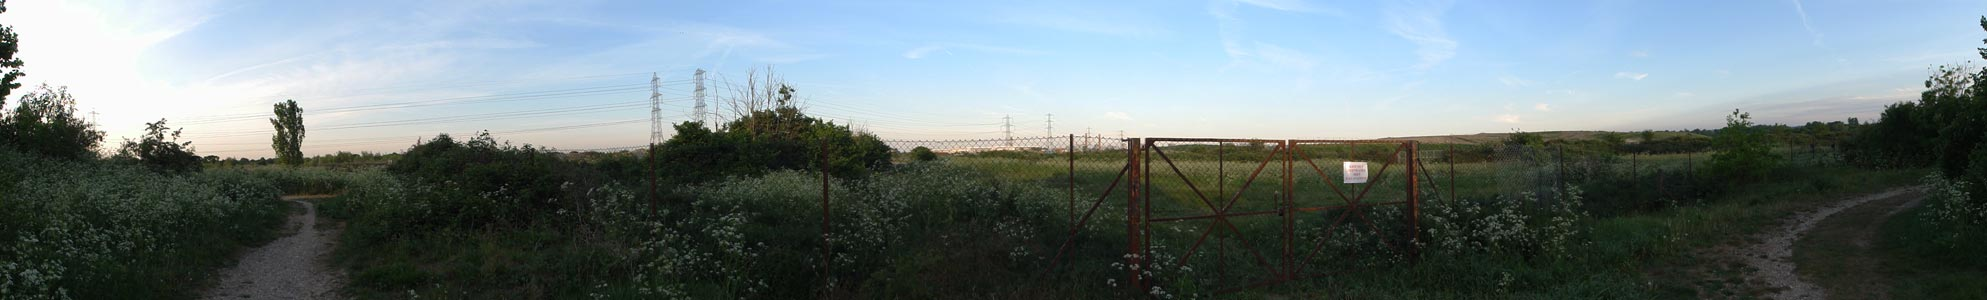 Panoramic view of Beddington approaching dusk